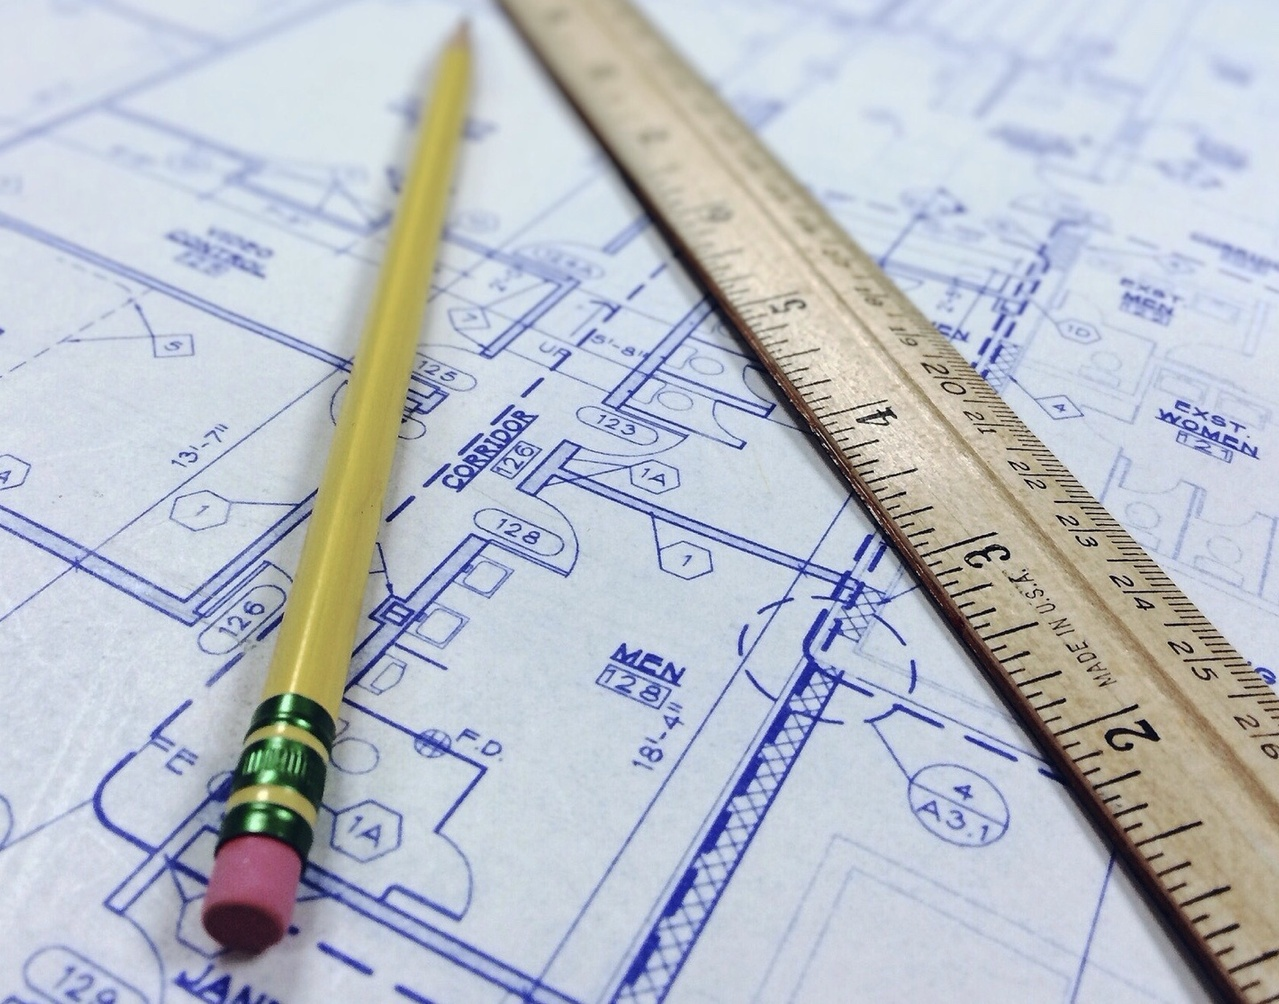 Blueprints with ruler and pencil